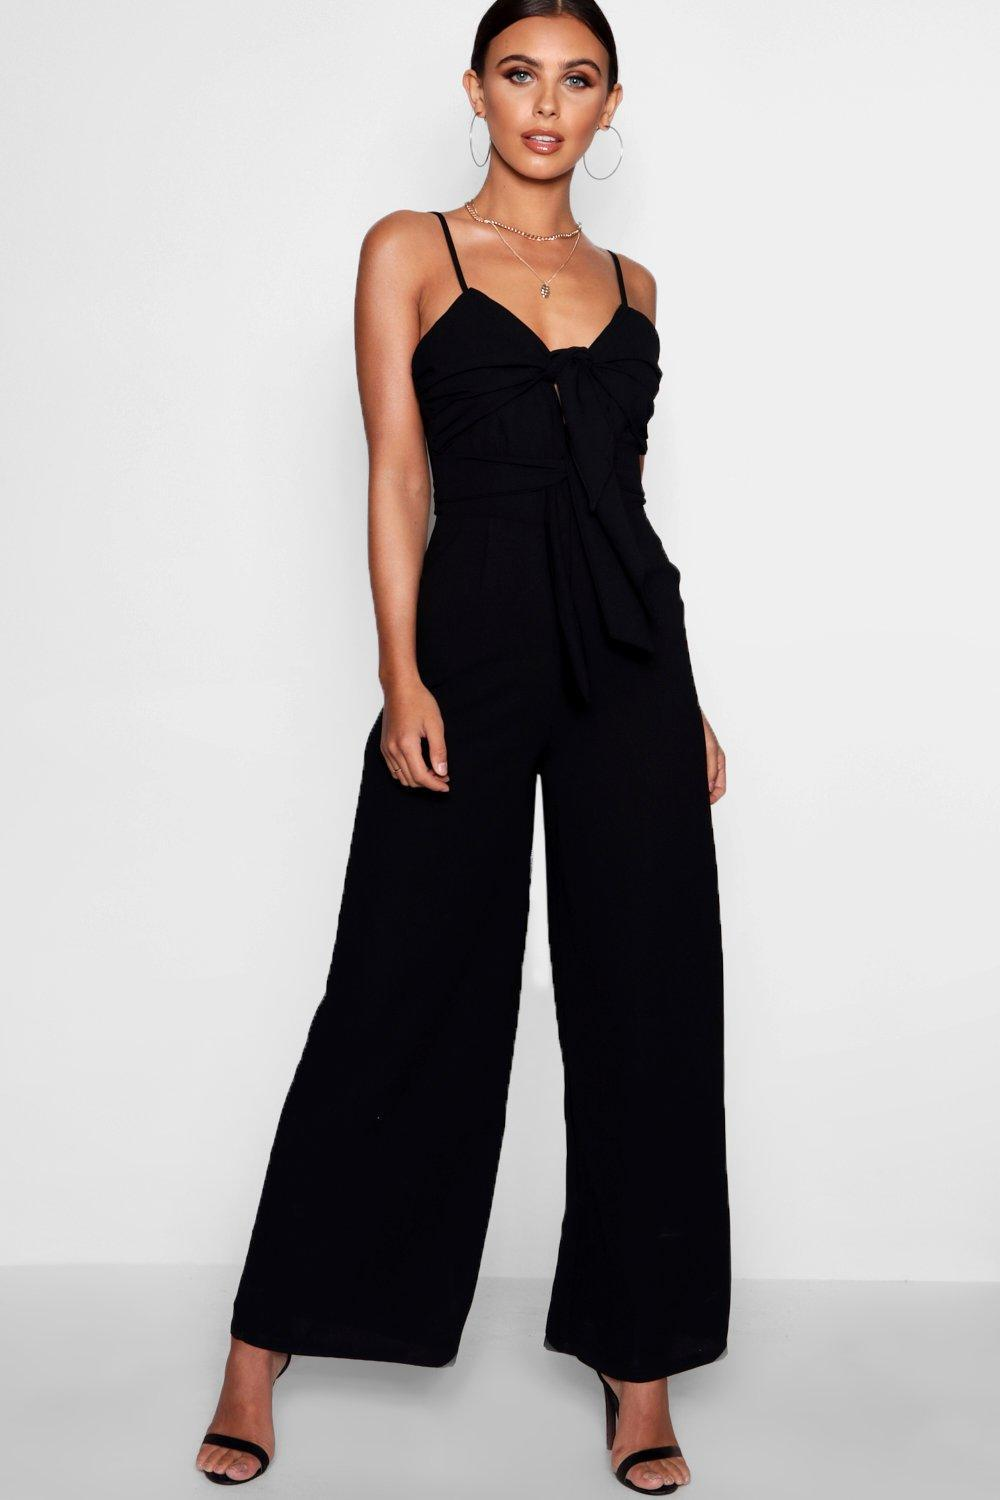 Online Cheapest  Boohoo Petite Double Knot Front Wide Leg Jumpsuit Buy Cheap Price 2018 Cheap Online Pay With Paypal Cheap Online Free Shipping Low Cost mvwABW88v